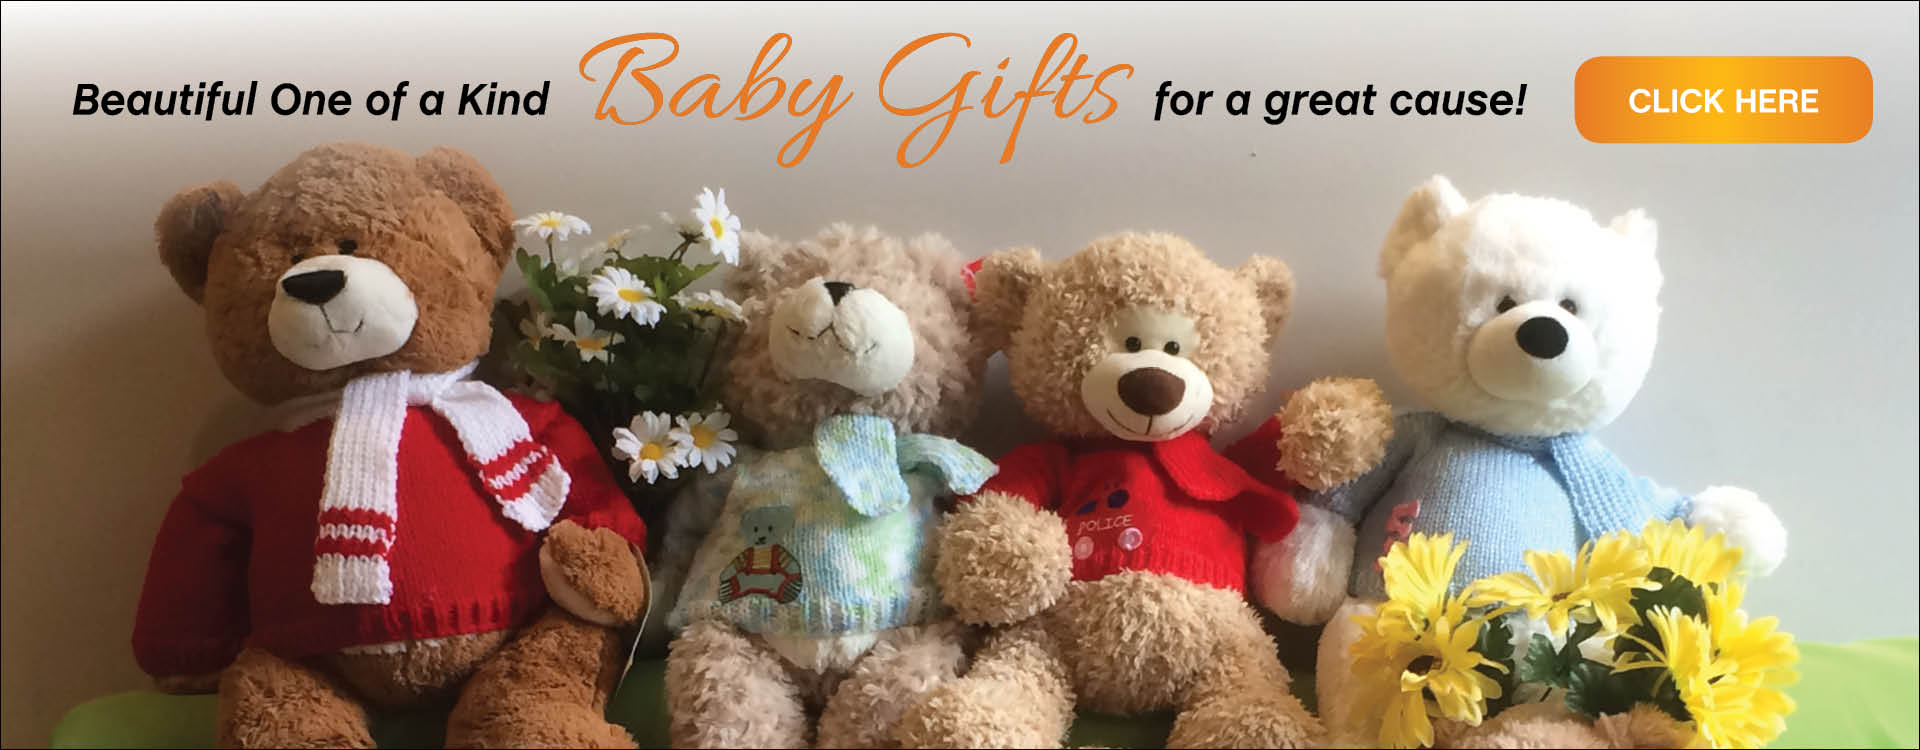 baby-gifts-banner_1920x750